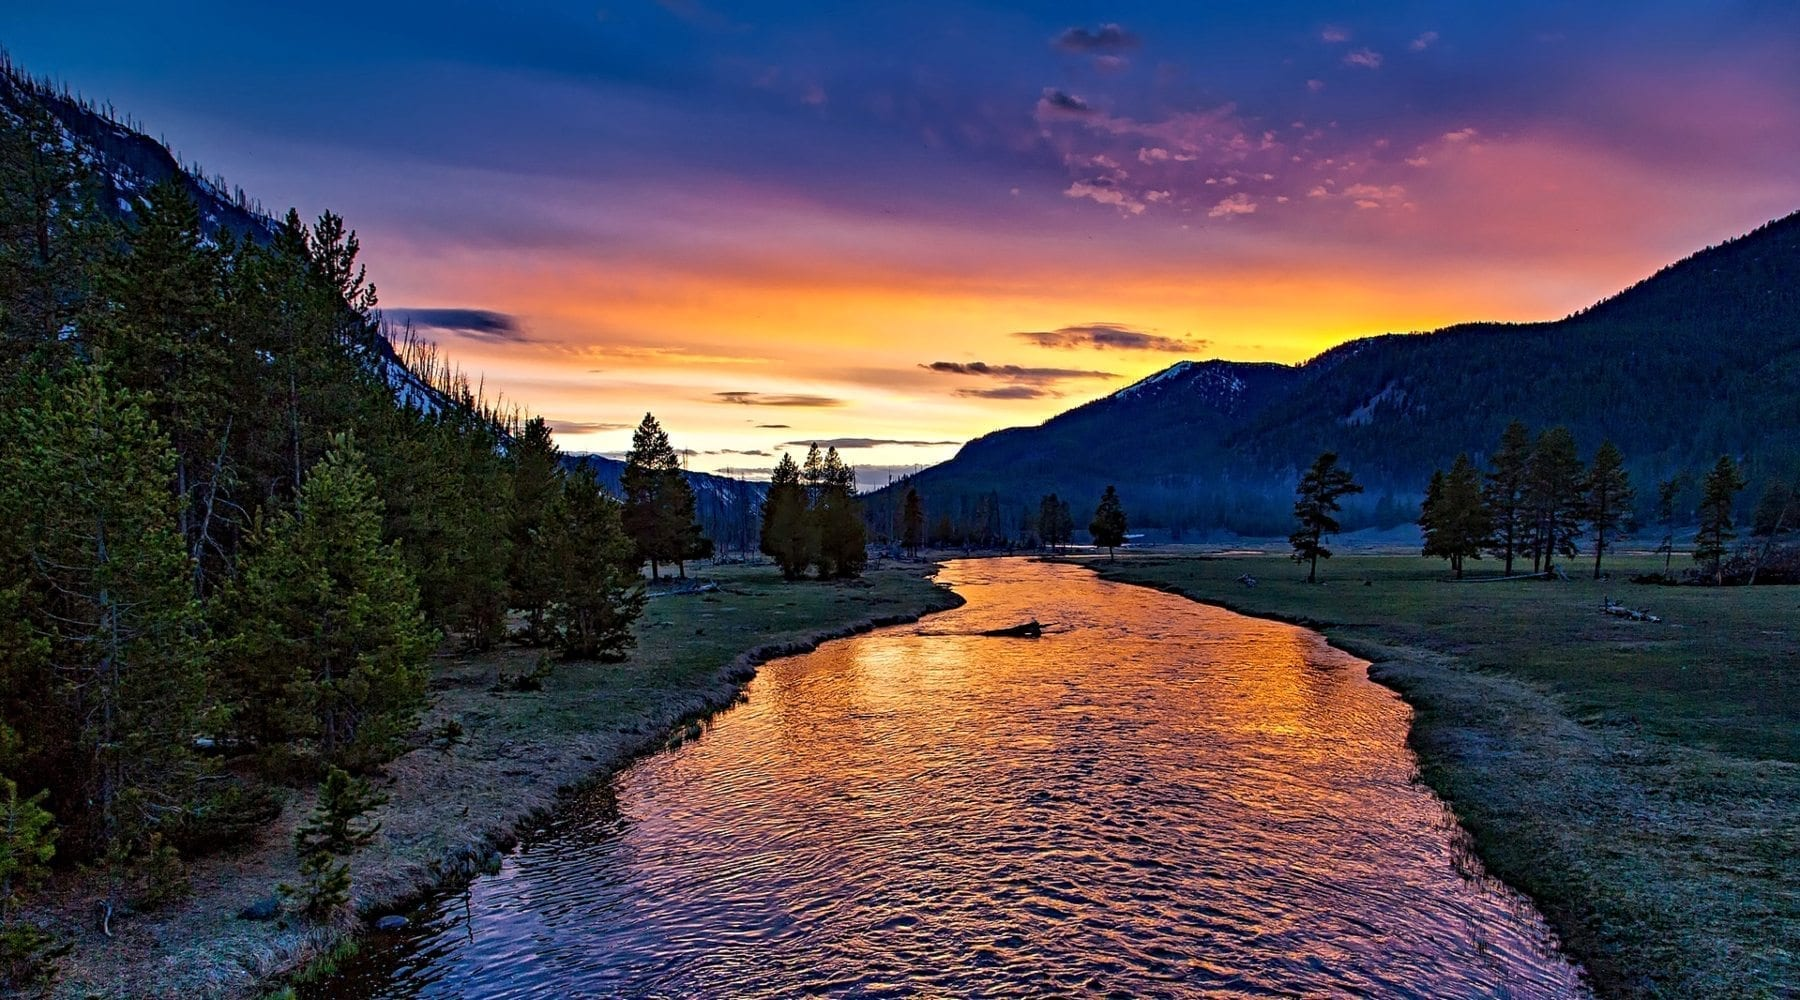 Yellowstone National Park at twilight